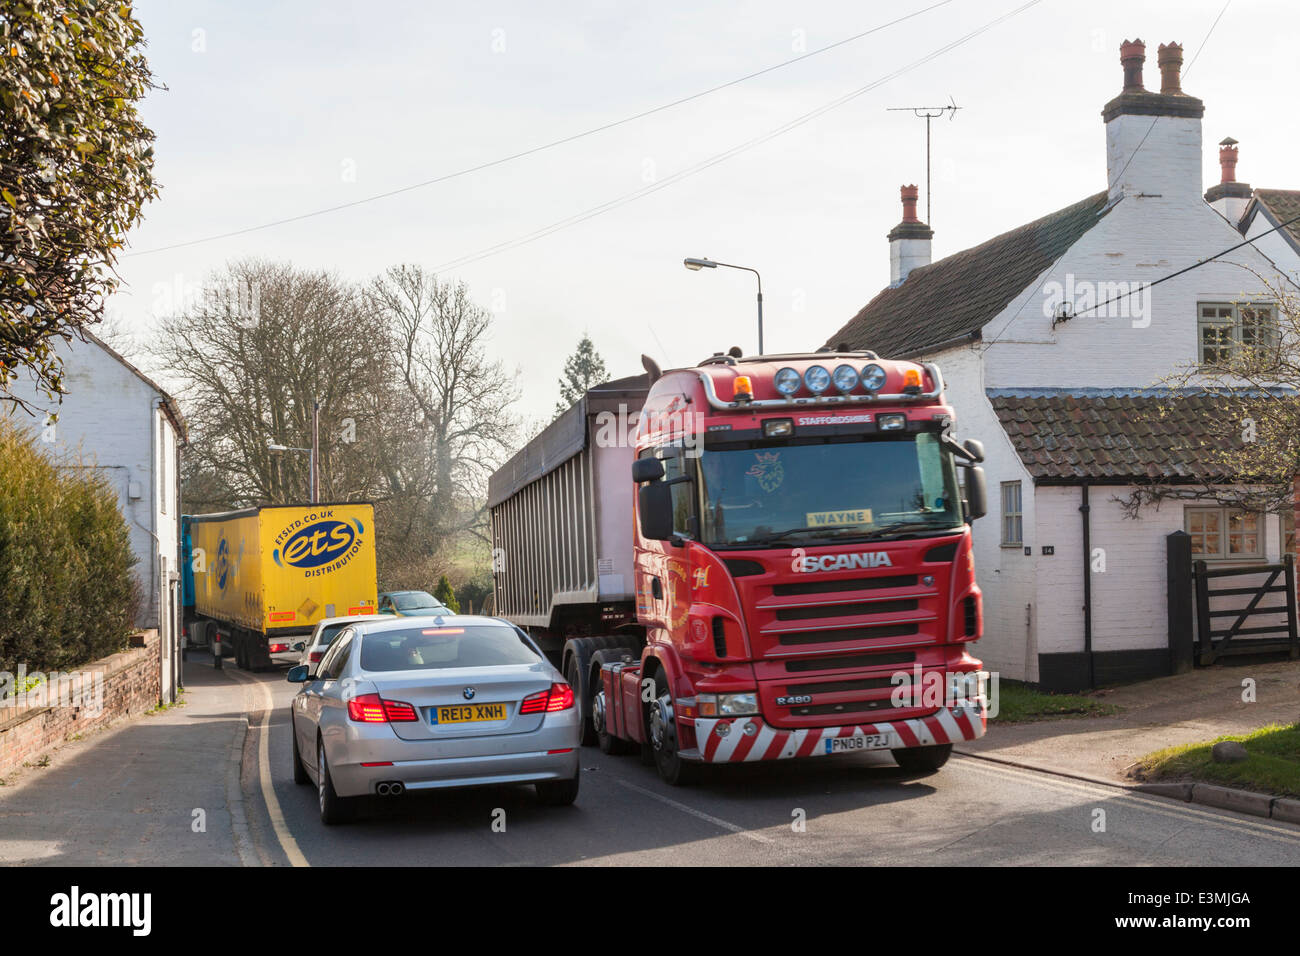 Traffic jam with lorries and cars passing close to houses in the rural village of Rempstone, Nottinghamshire, England, - Stock Image